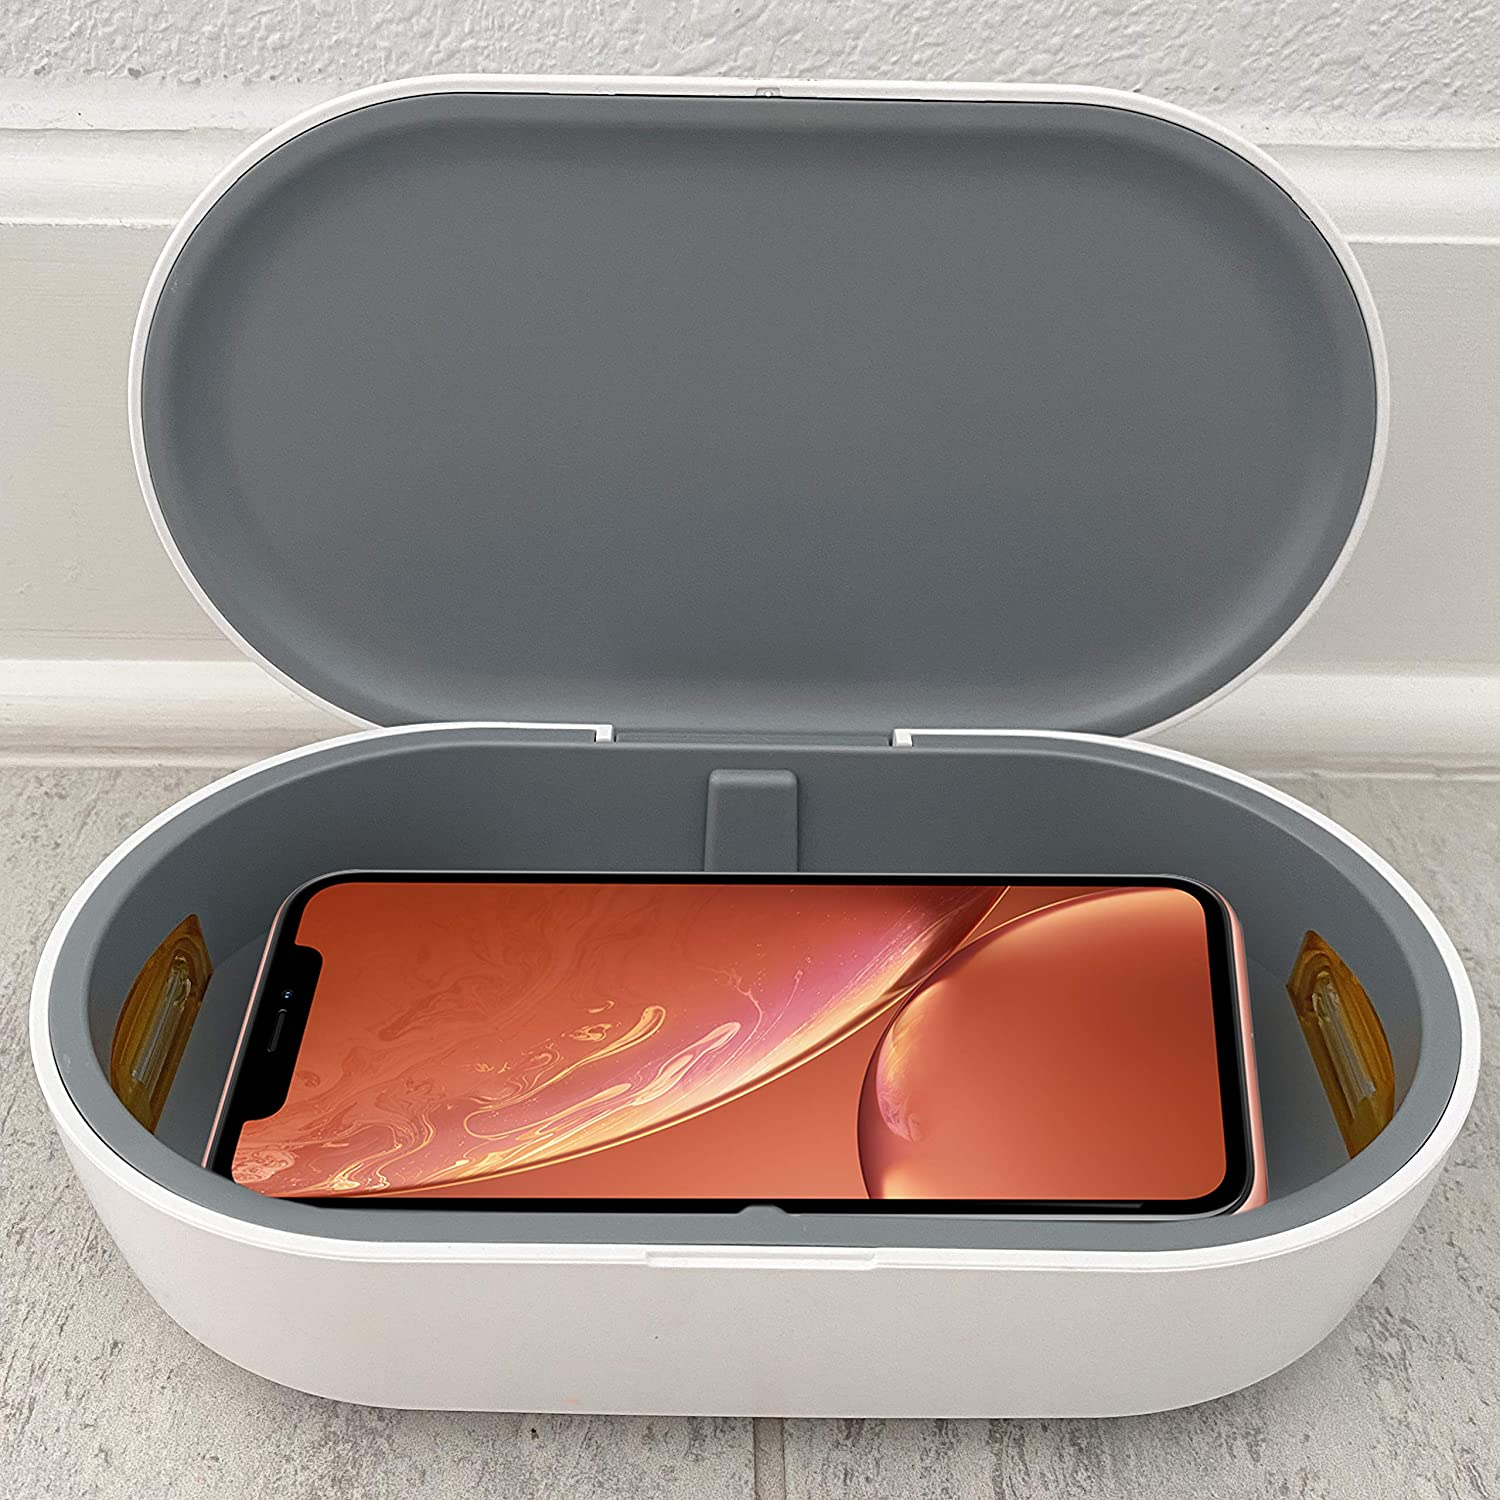 UV Phone Sanitizer and Charger by Johns Avenue. Fits Phones, Credit Cards, Keys, Cash. UV Sanitizer Box Can Be Used in Car On The Way Home - Same Day Quick 2 Day Shipping.